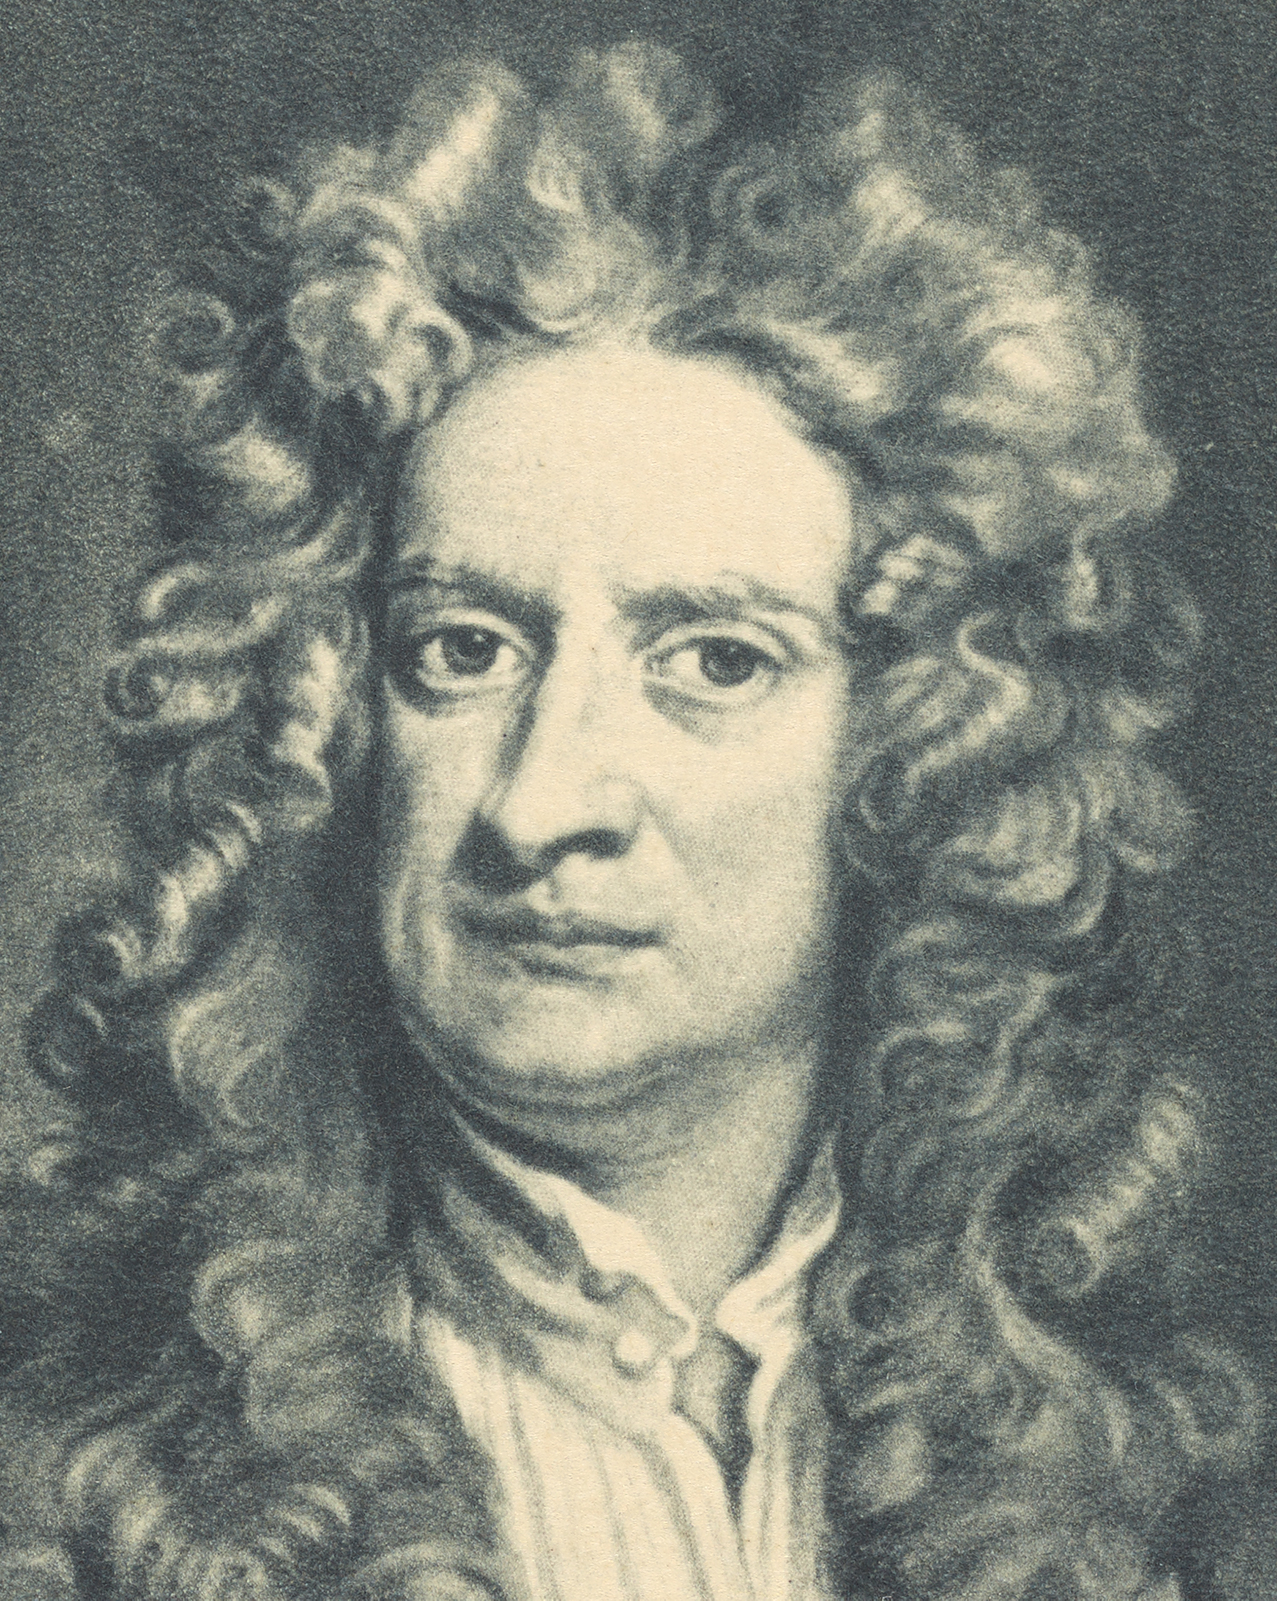 Illustrated portrait of a man